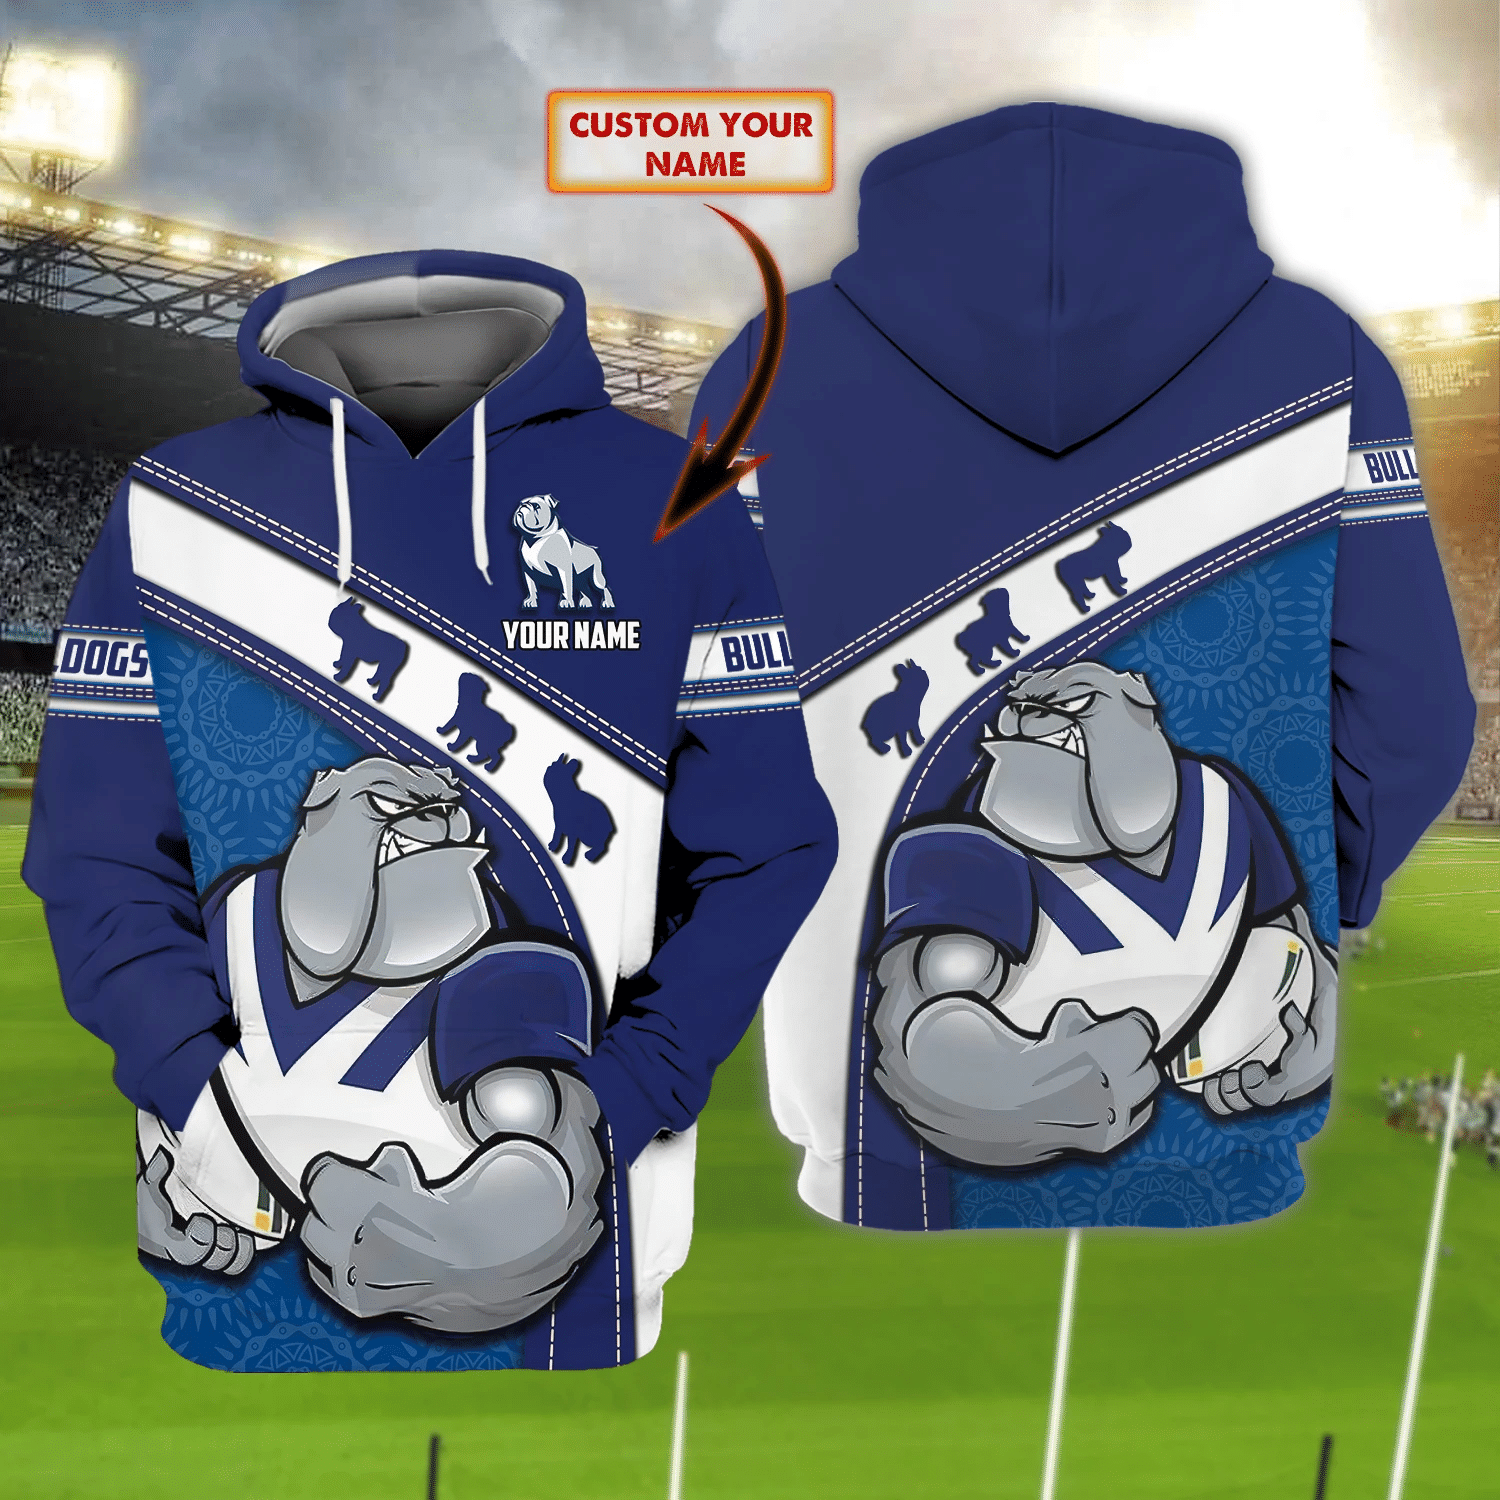 Bulldogs - Nvc97 - Personalized Name 3D Hoodie 77 - Nvc97